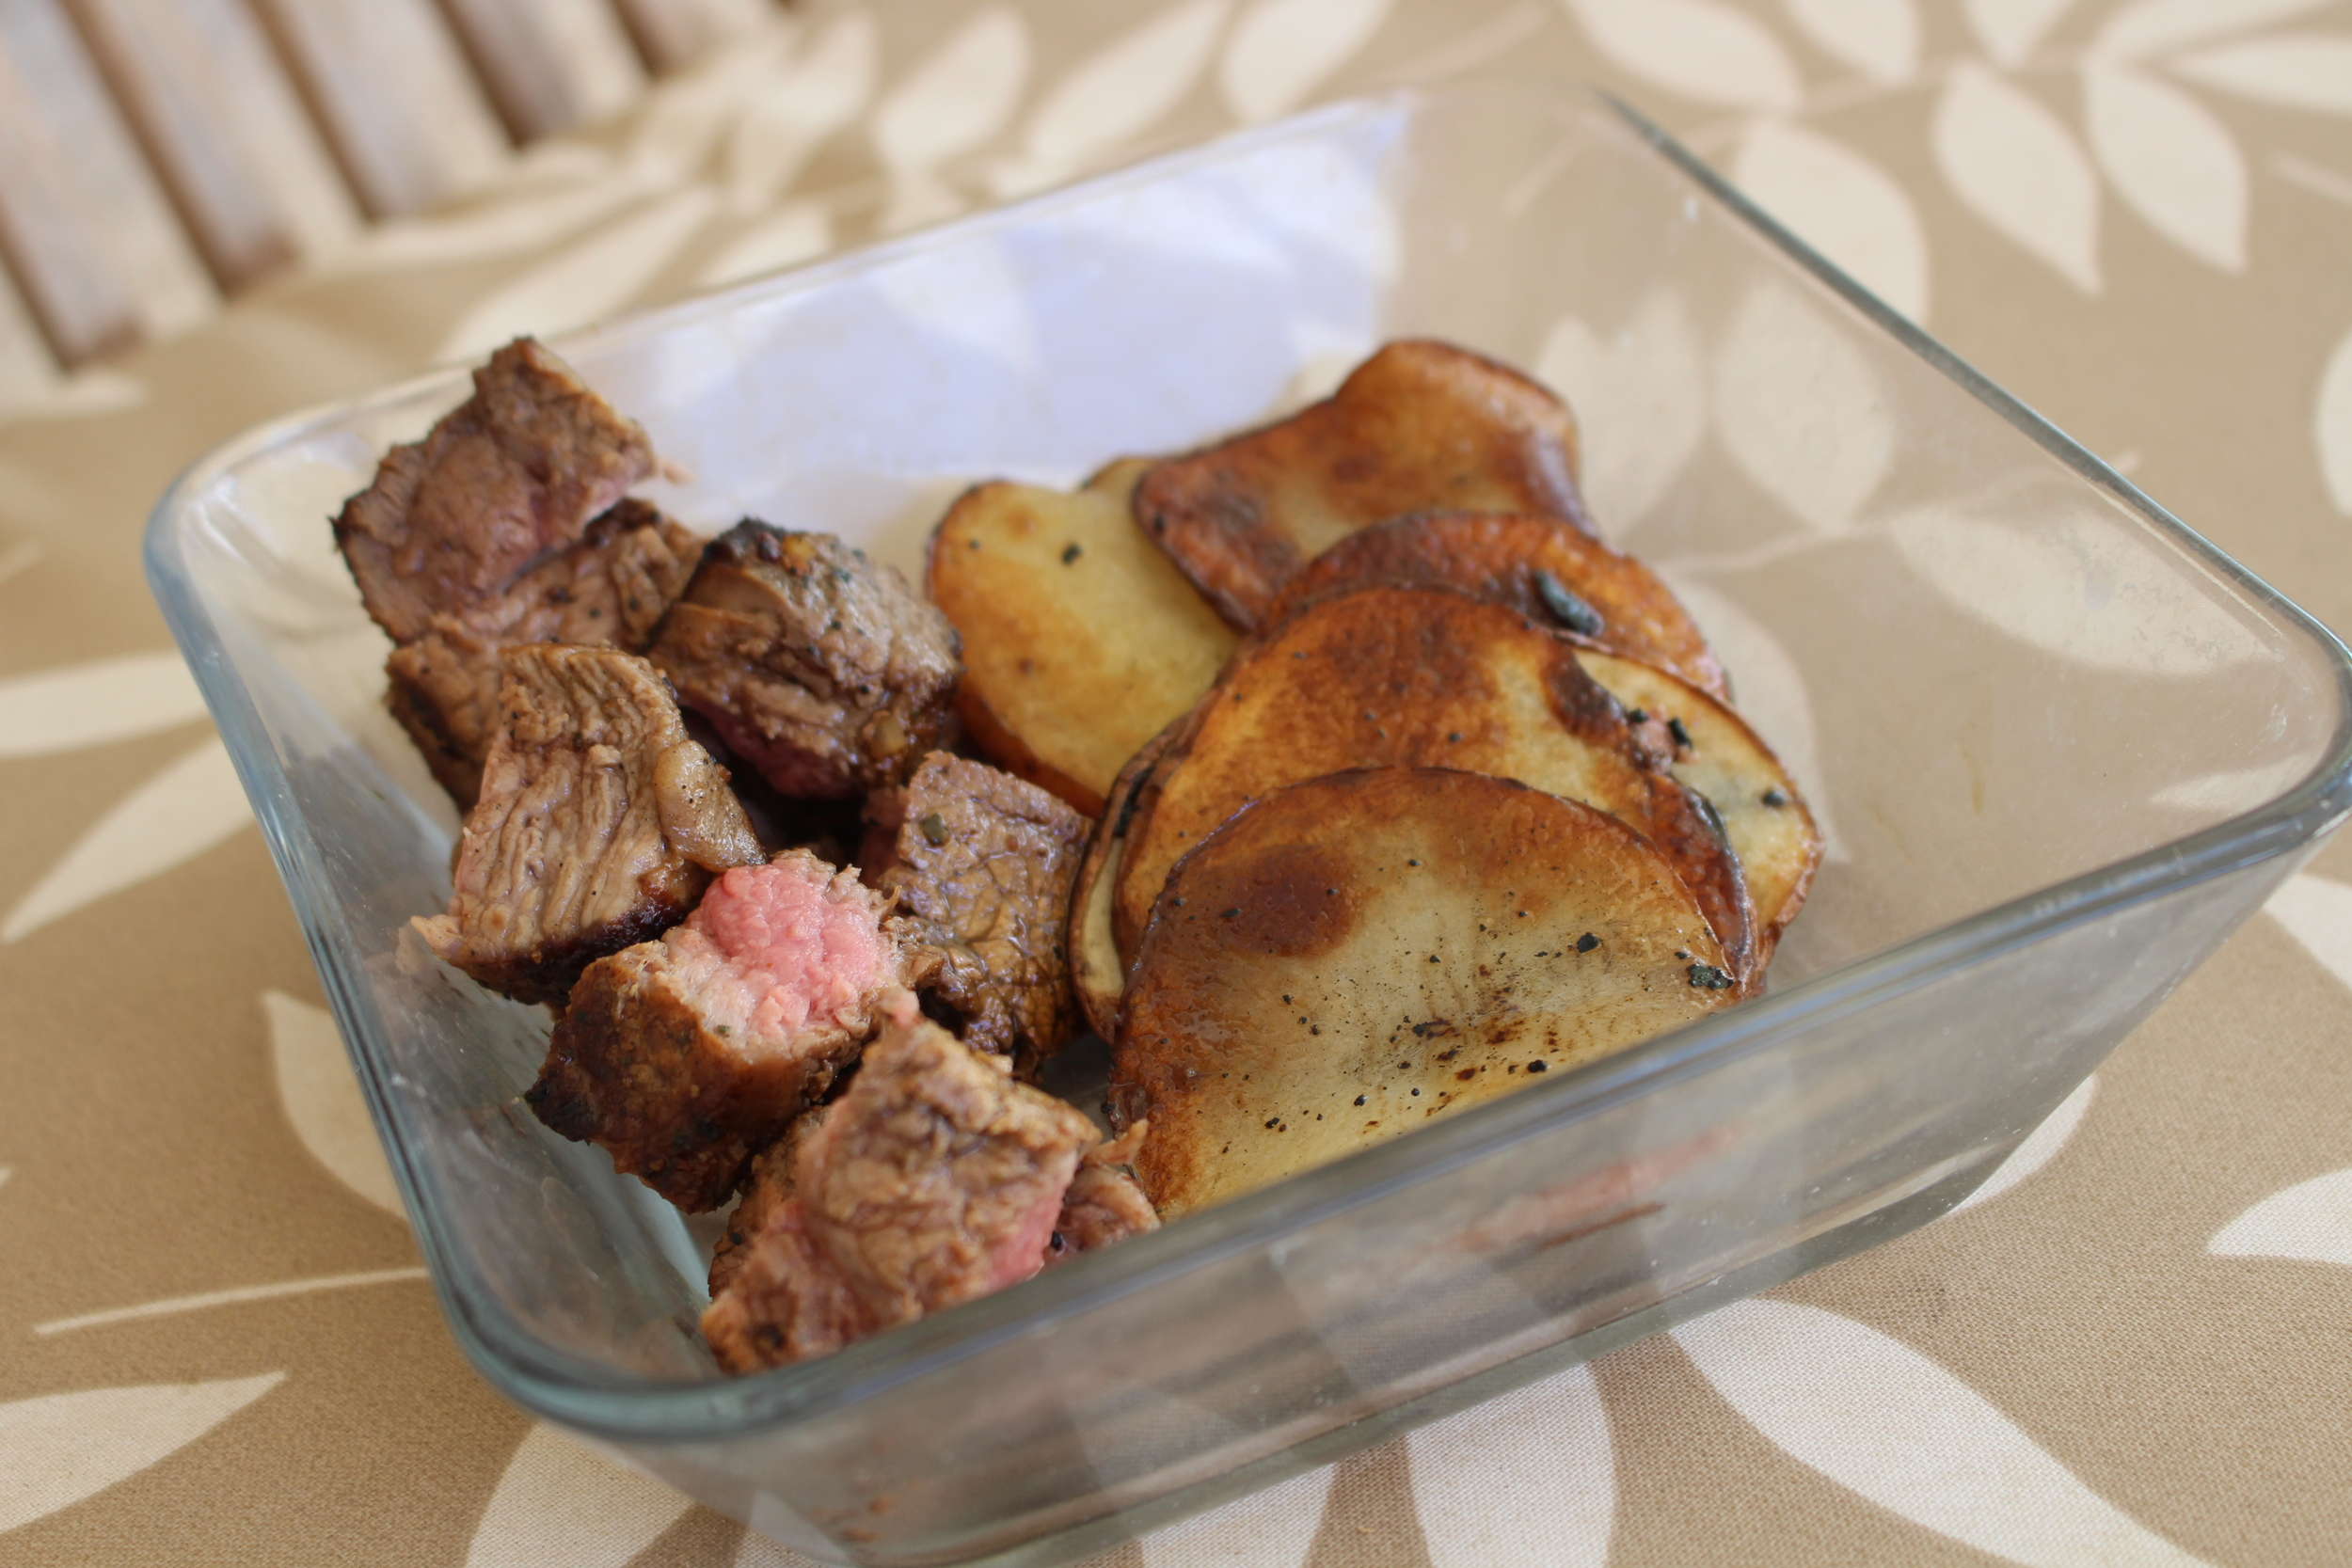 Bfast: Sirloin steak and Red poatoes